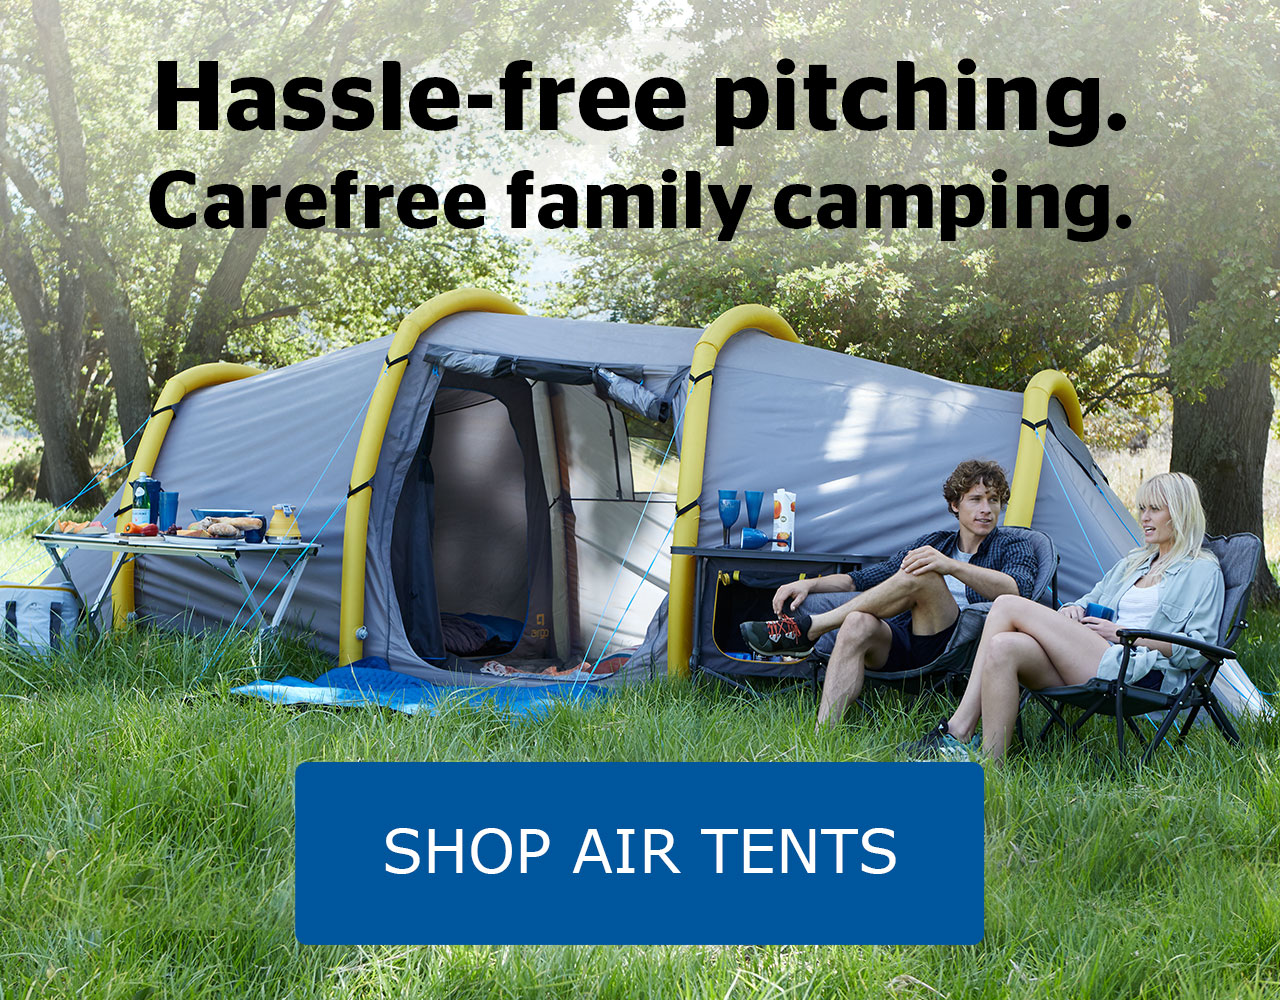 Shop Air Tents